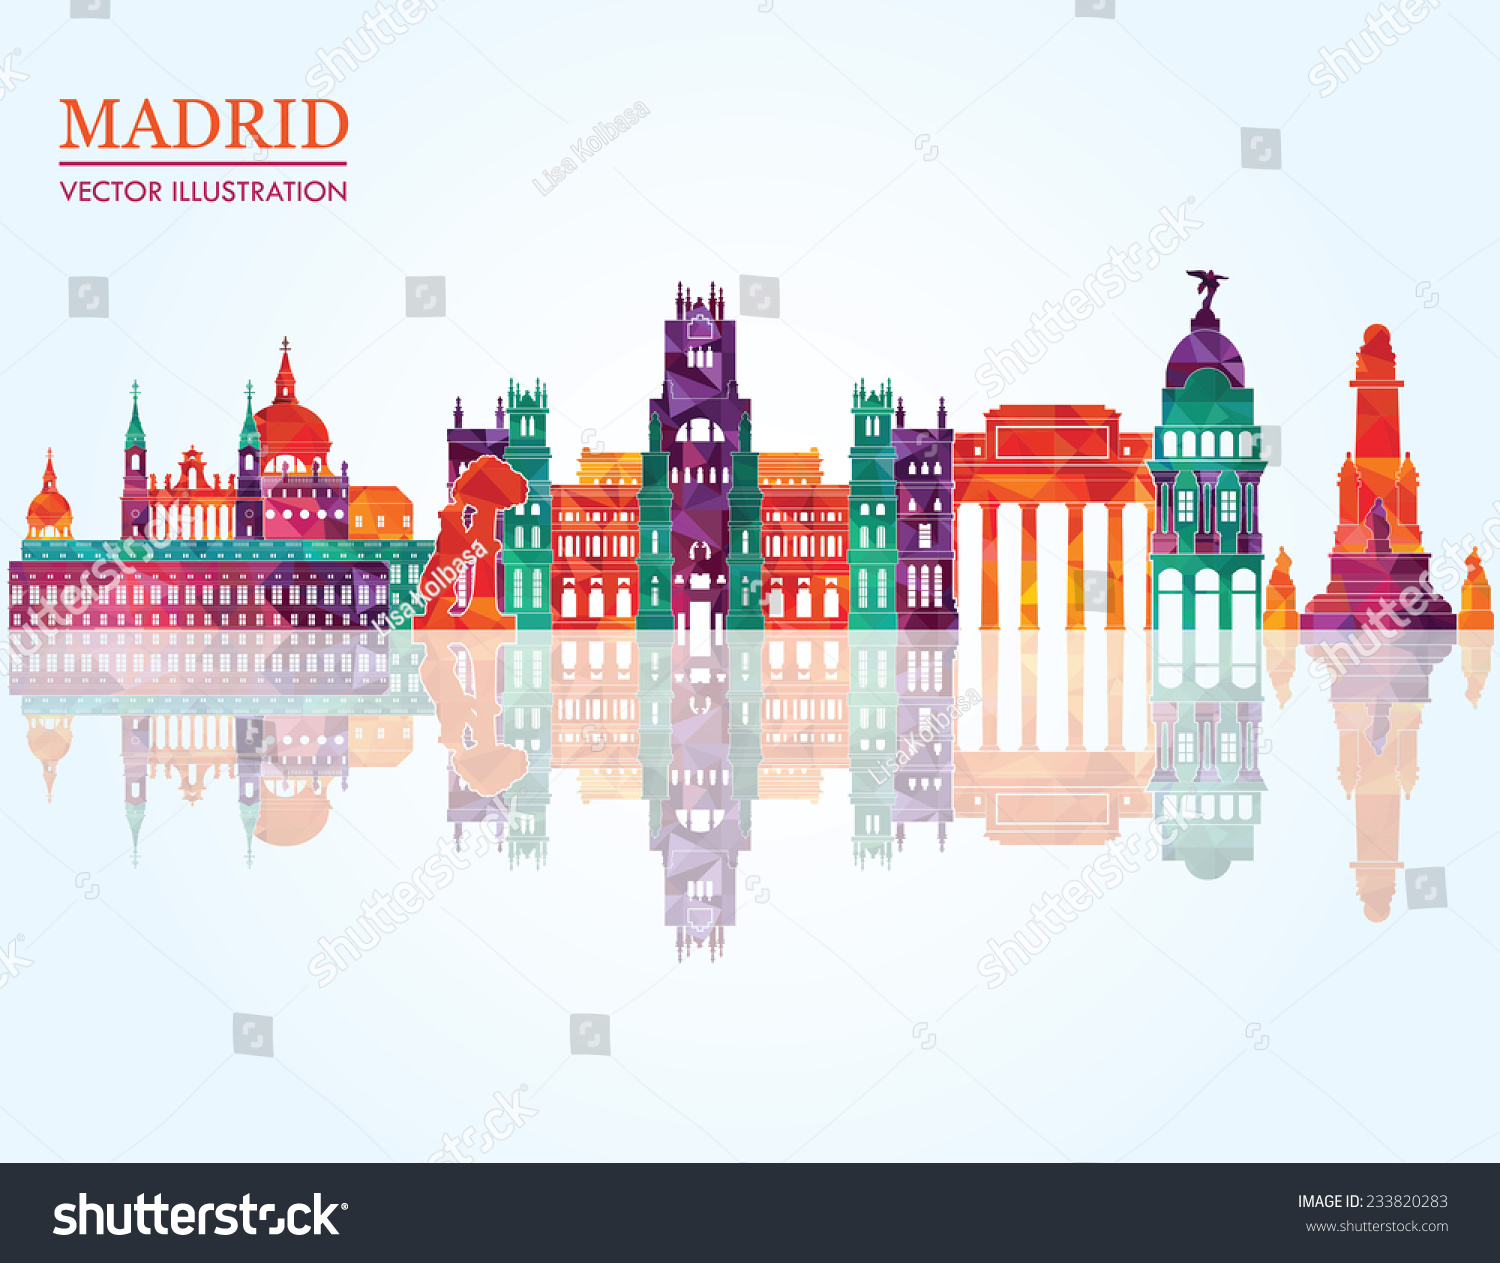 Madrid skyline vector illustration